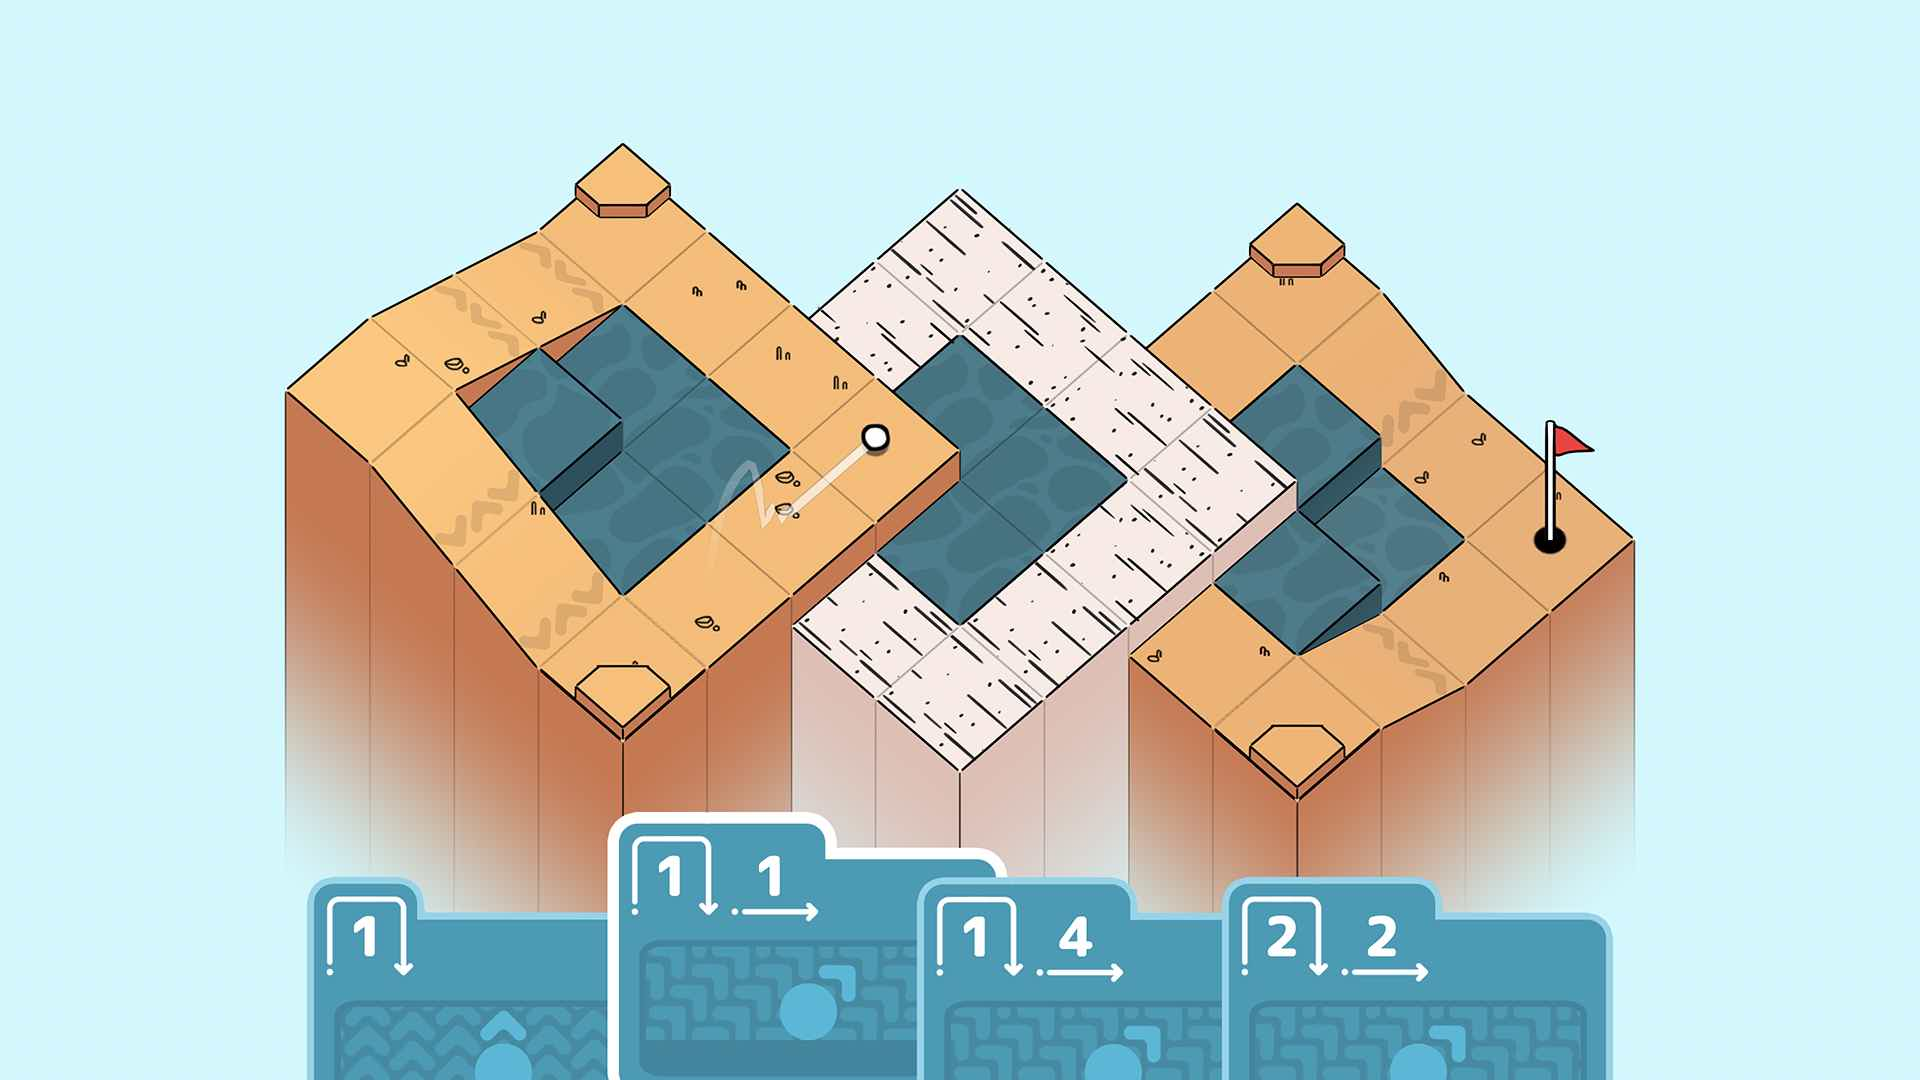 Card-based puzzler Golf Peaks out now on Steam and iOS - Gamepad News